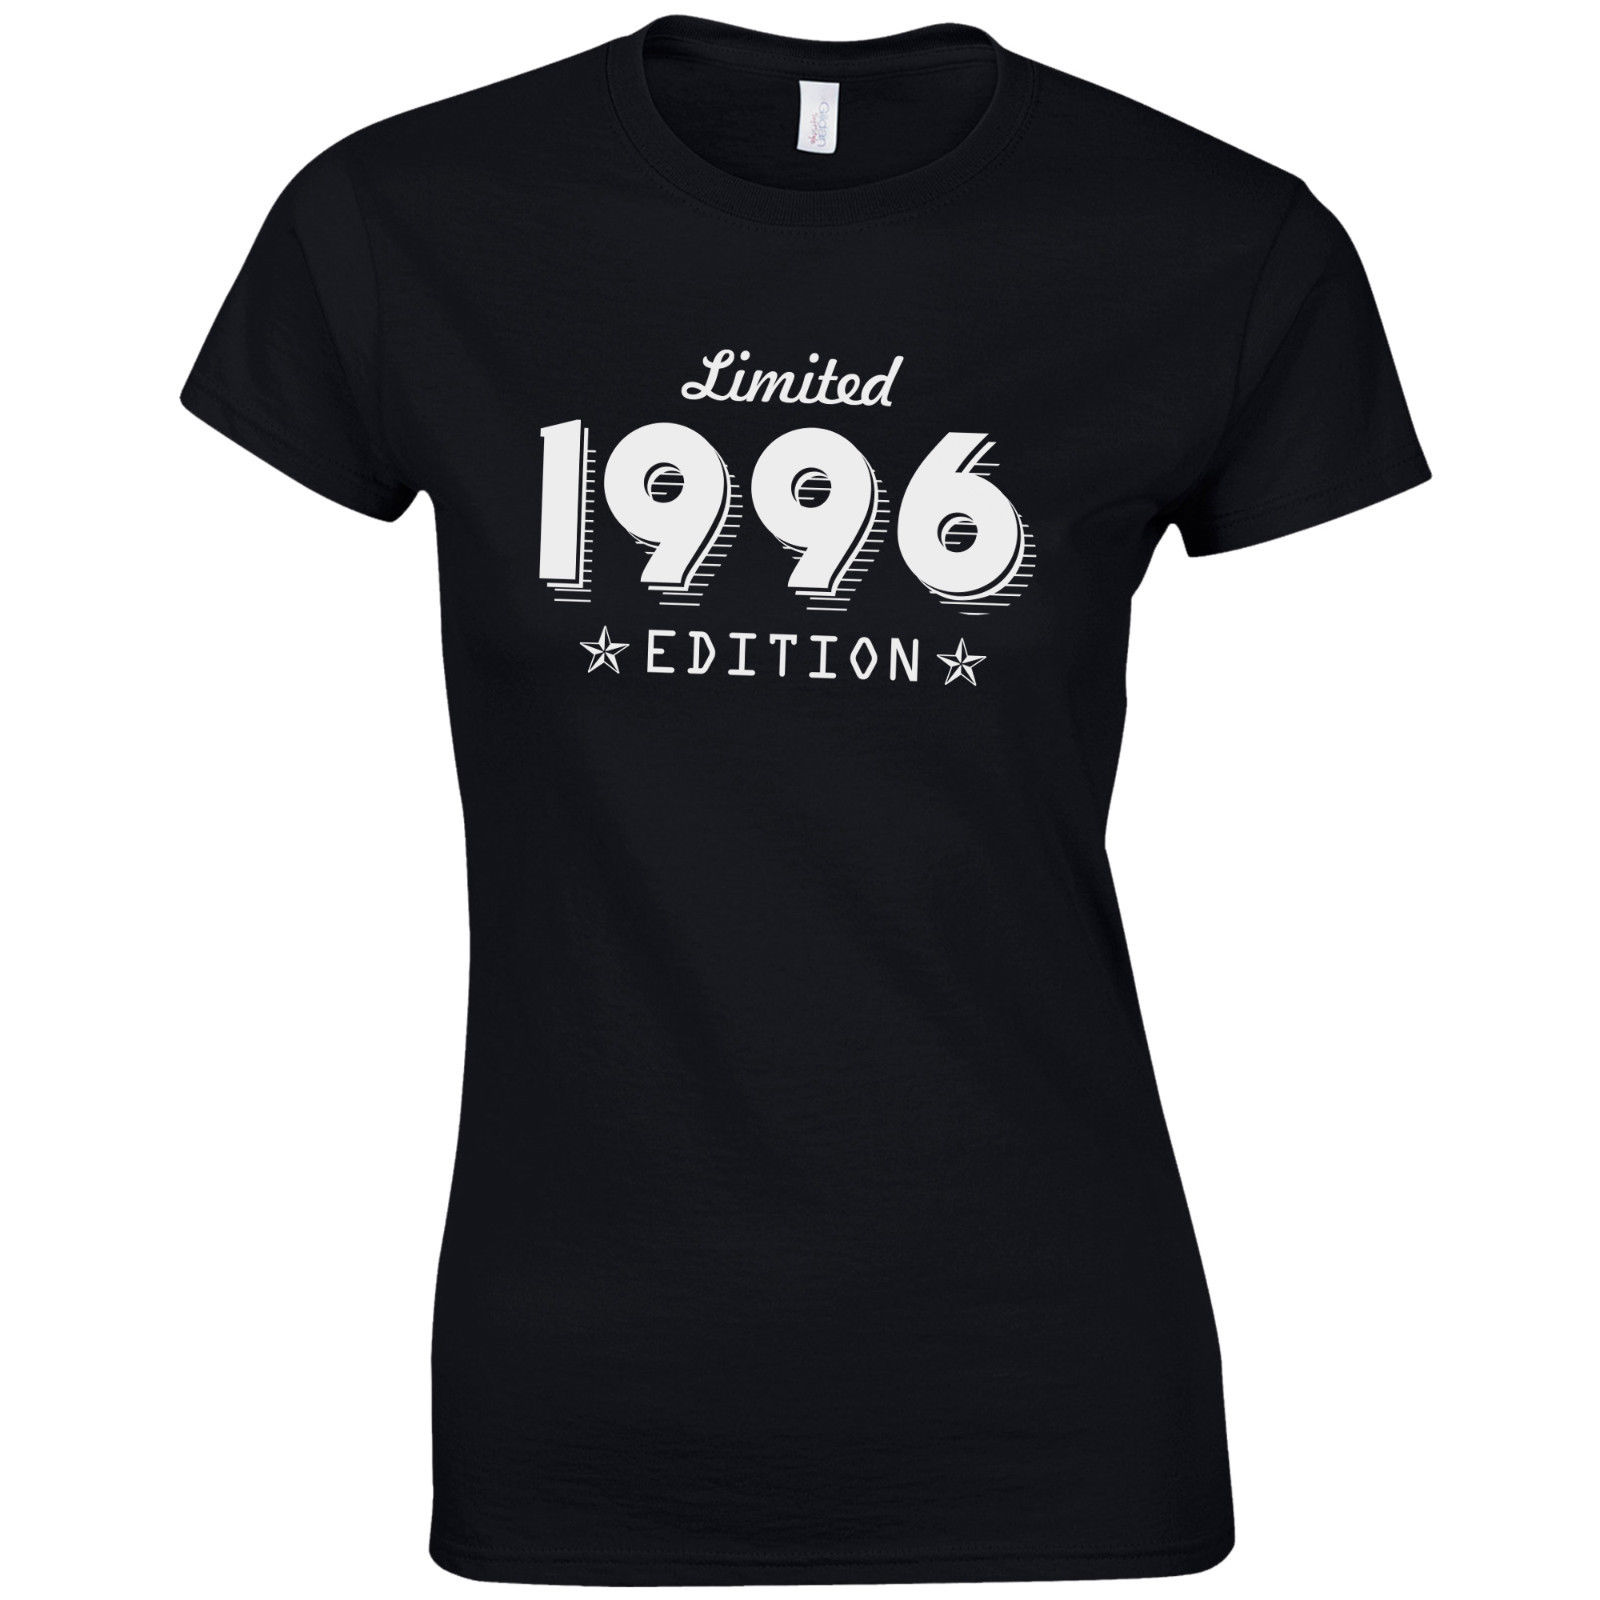 Black t shirt quotes - T Shirt Quotes Short Sleeve Graphic O Neck Limited Edition 1996 Fitted Born 21st Year